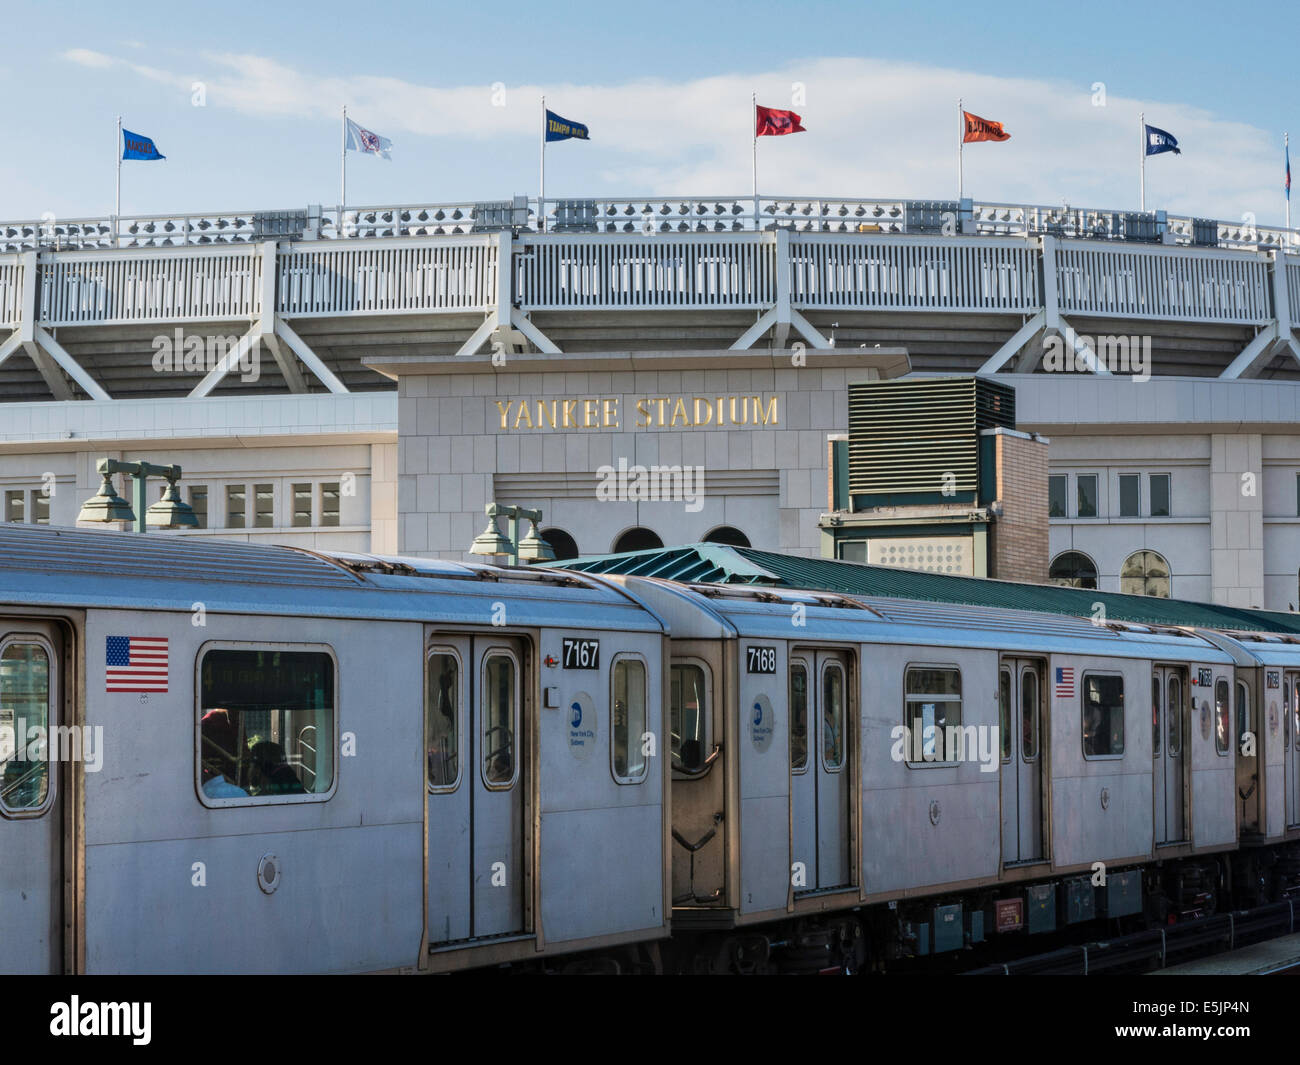 4 subway platform, train and tracks at yankee stadium, the